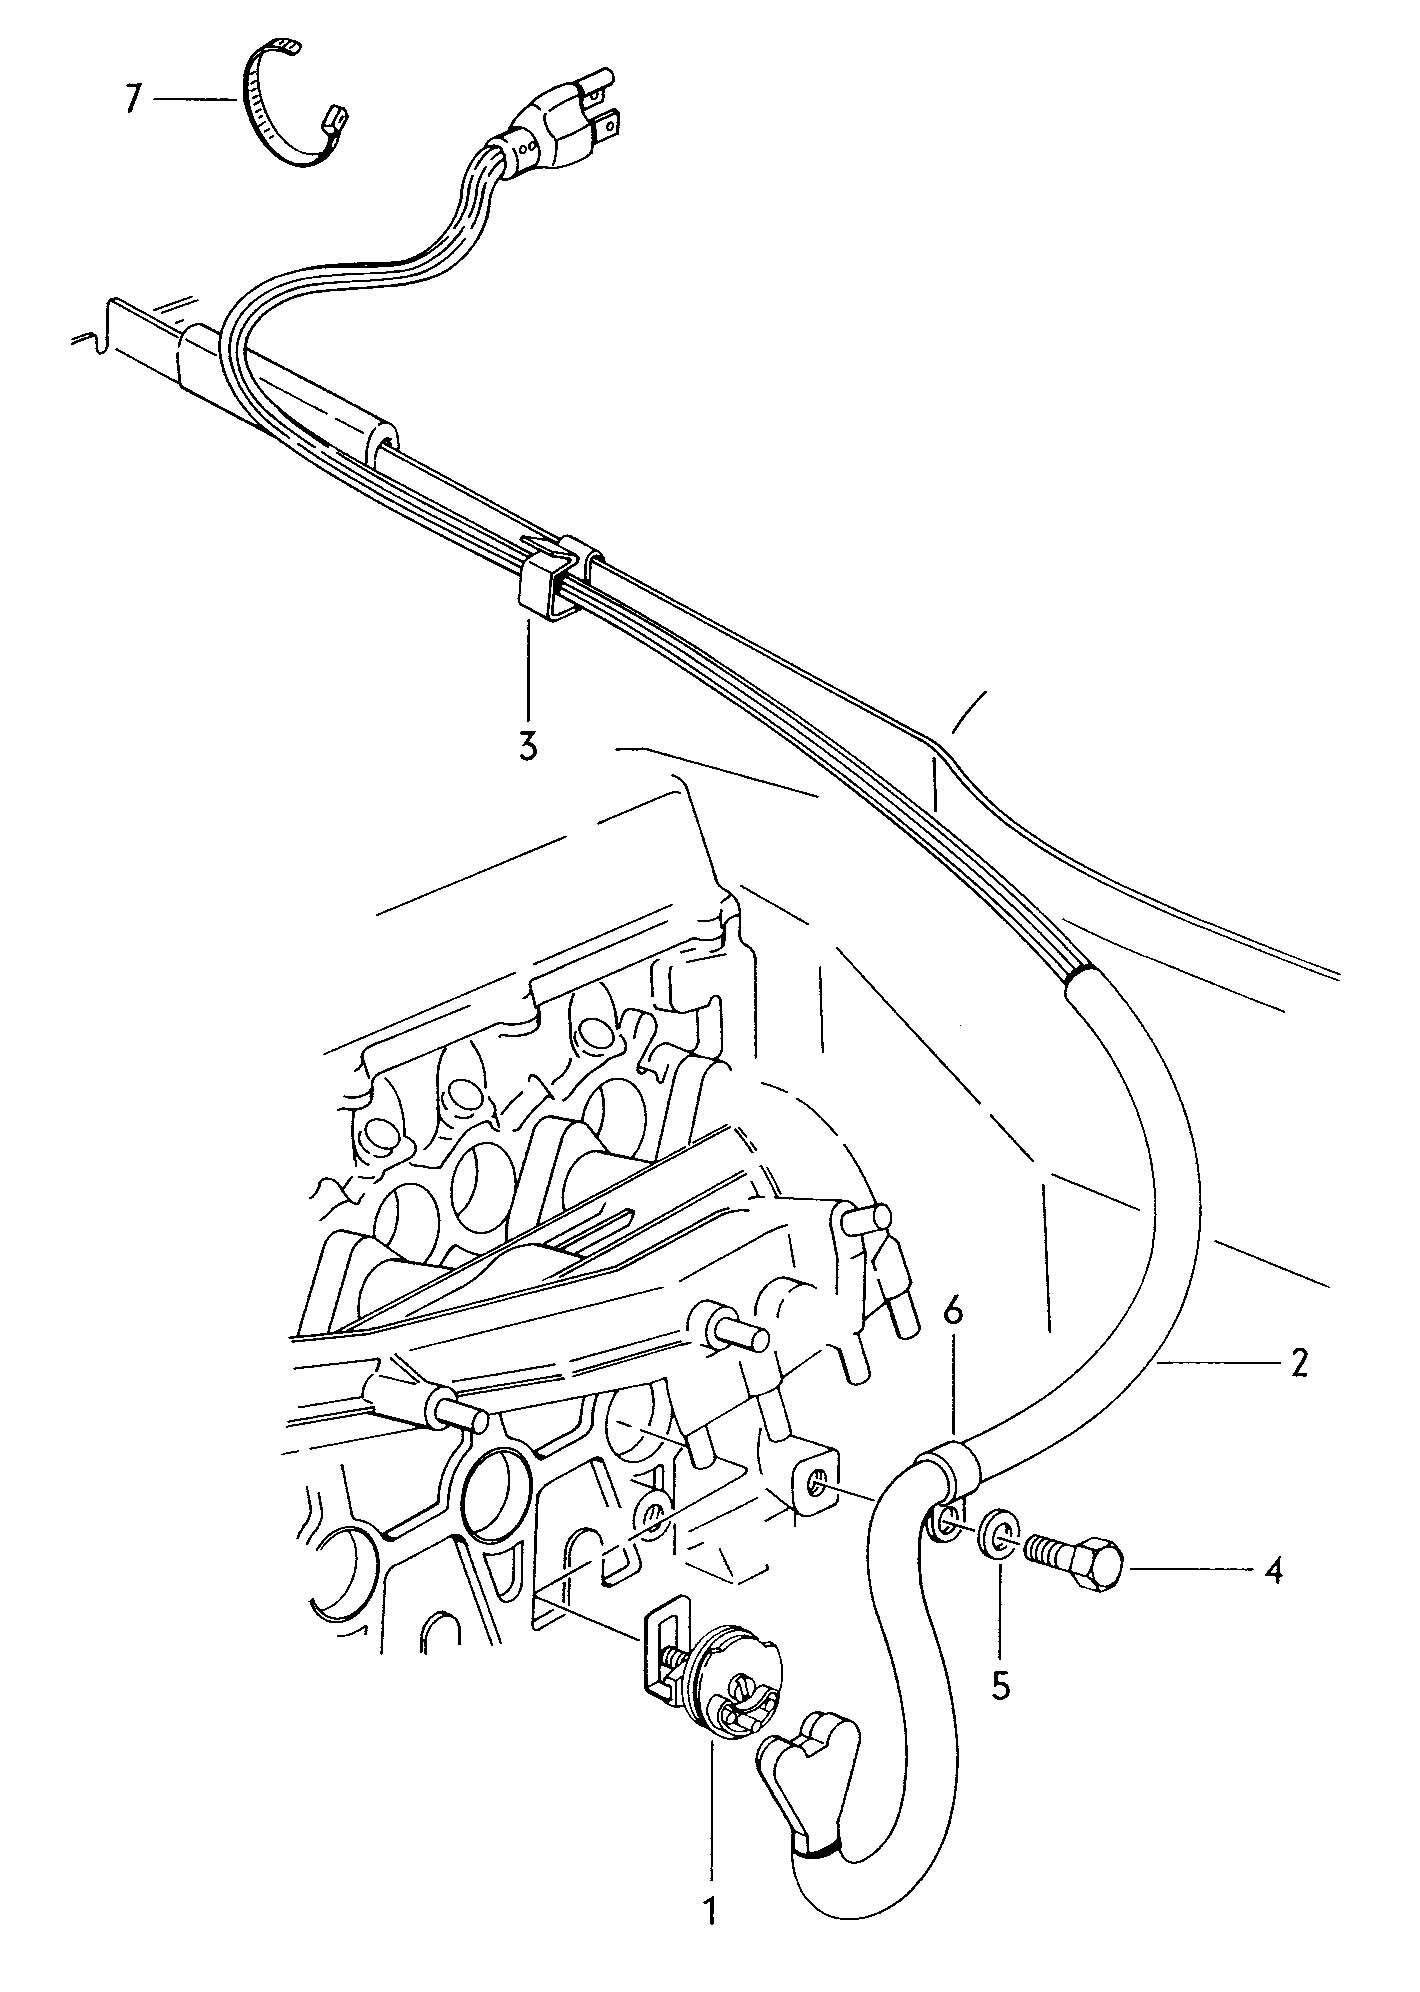 Volkswagen Rabbit Engine Block Heater